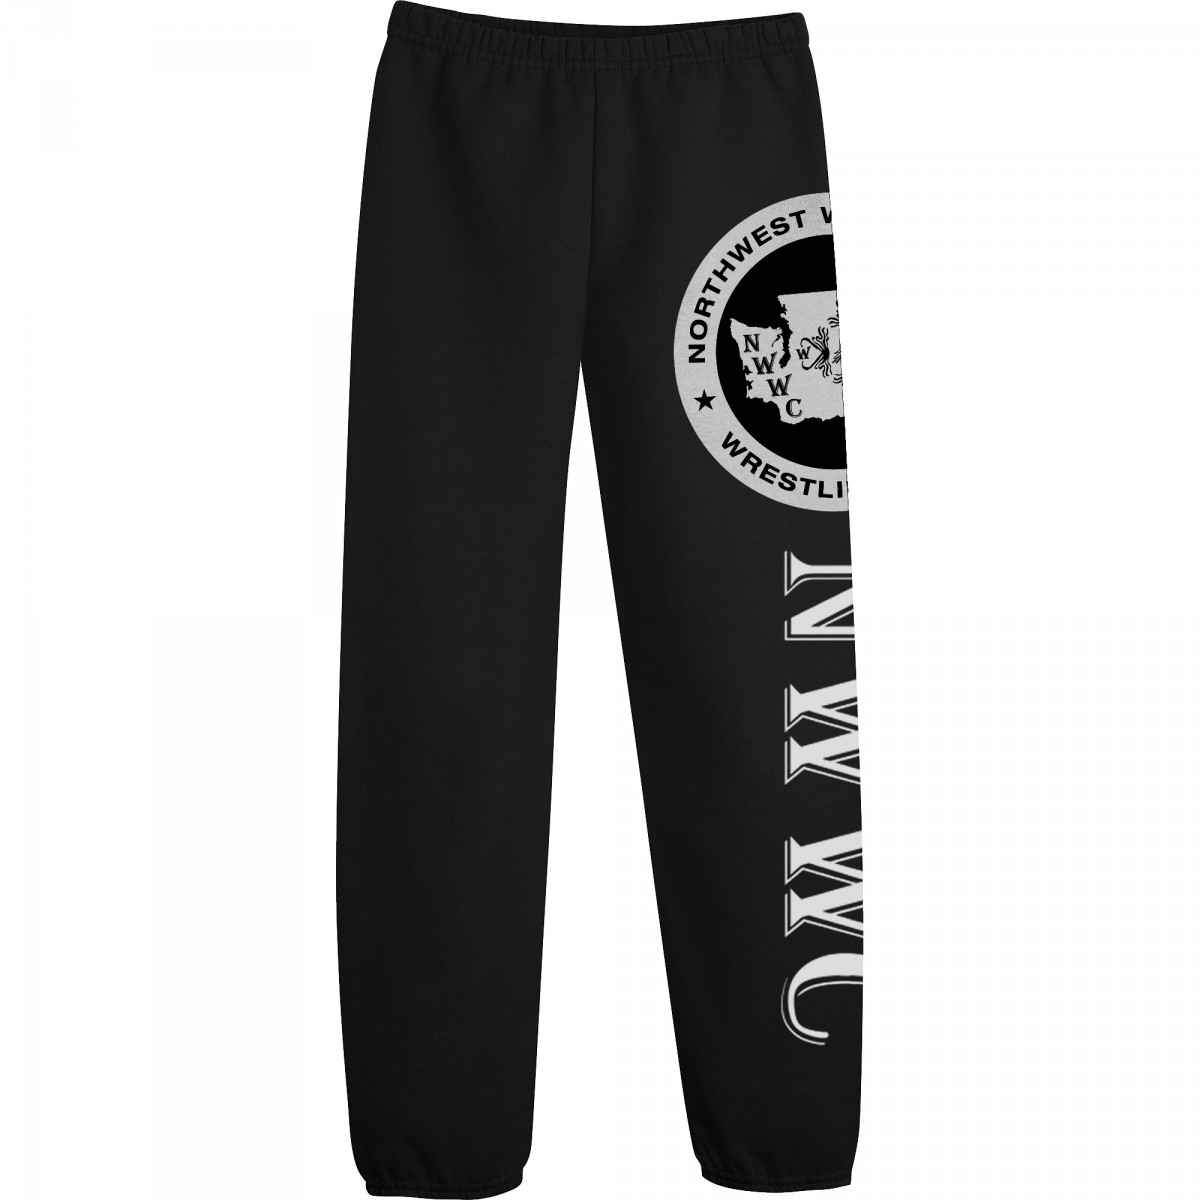 NWWC Black Sweatpants White Logo-Black-2XL